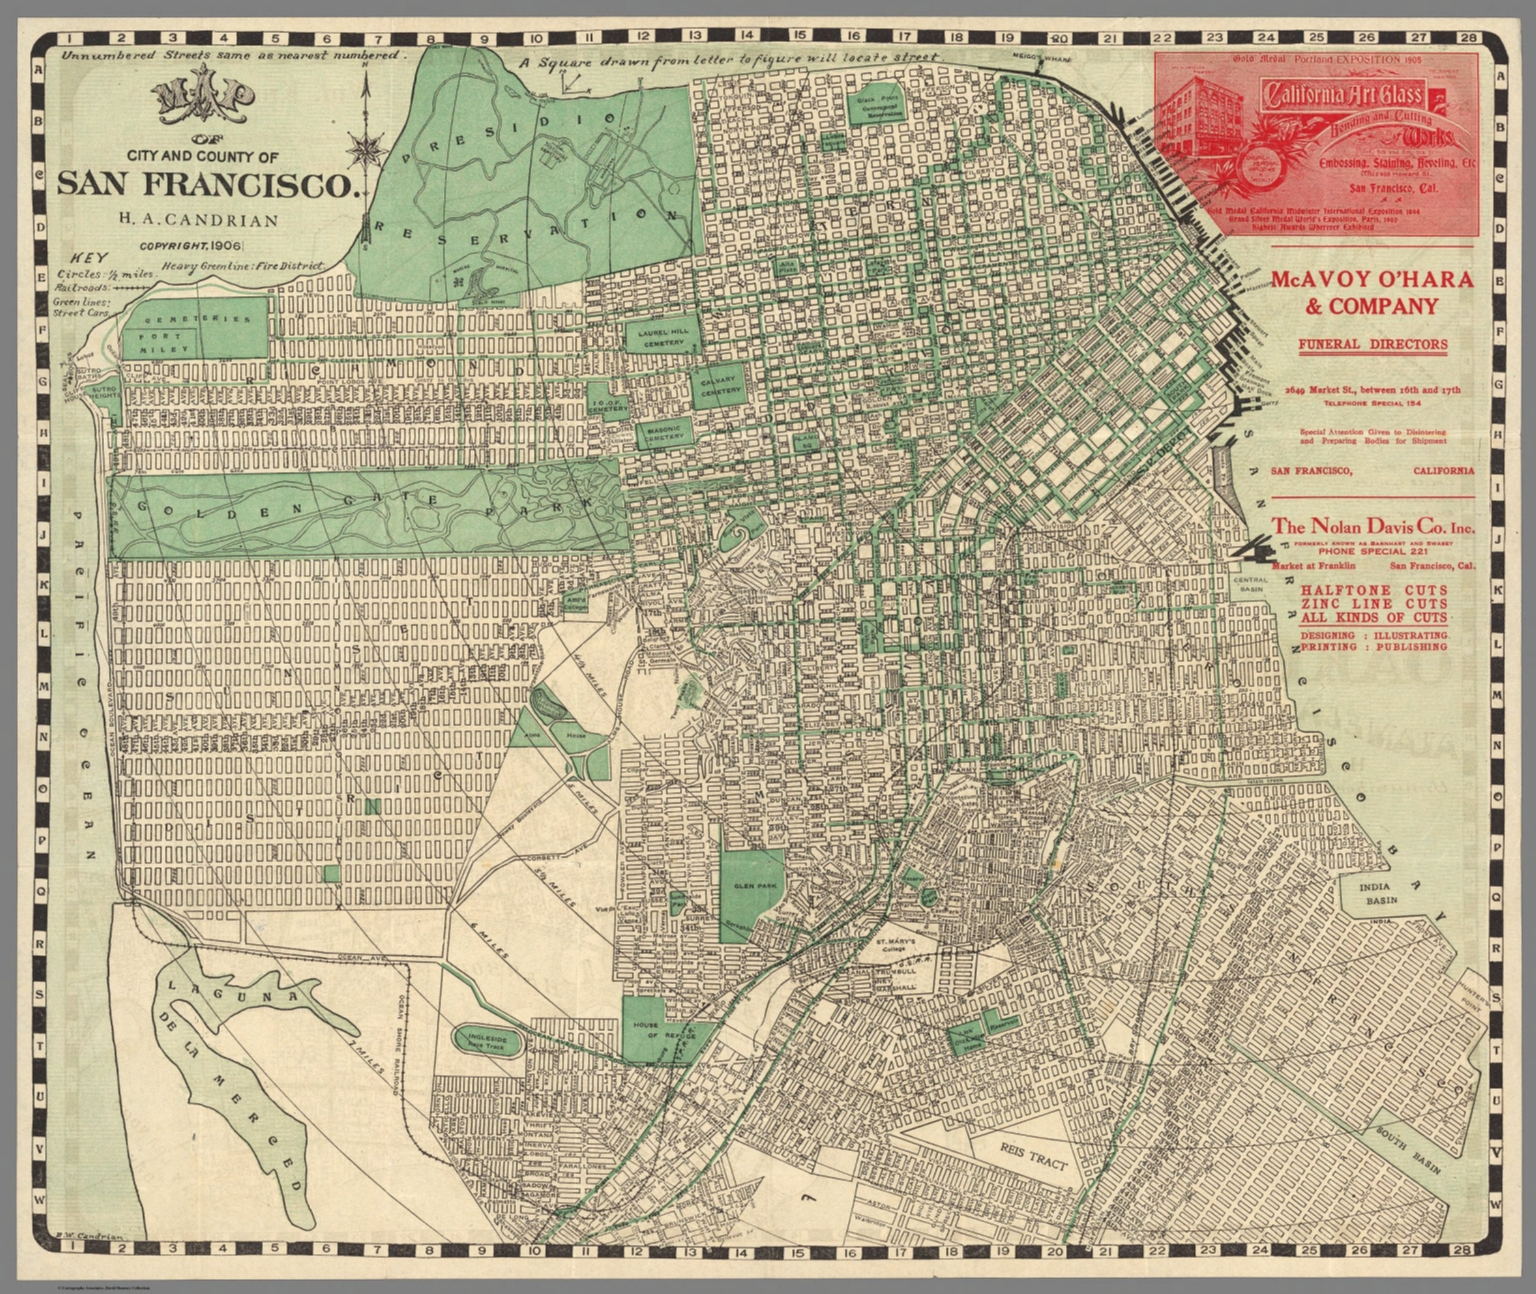 Map of city and county of San Francisco HA Candrian Copyright